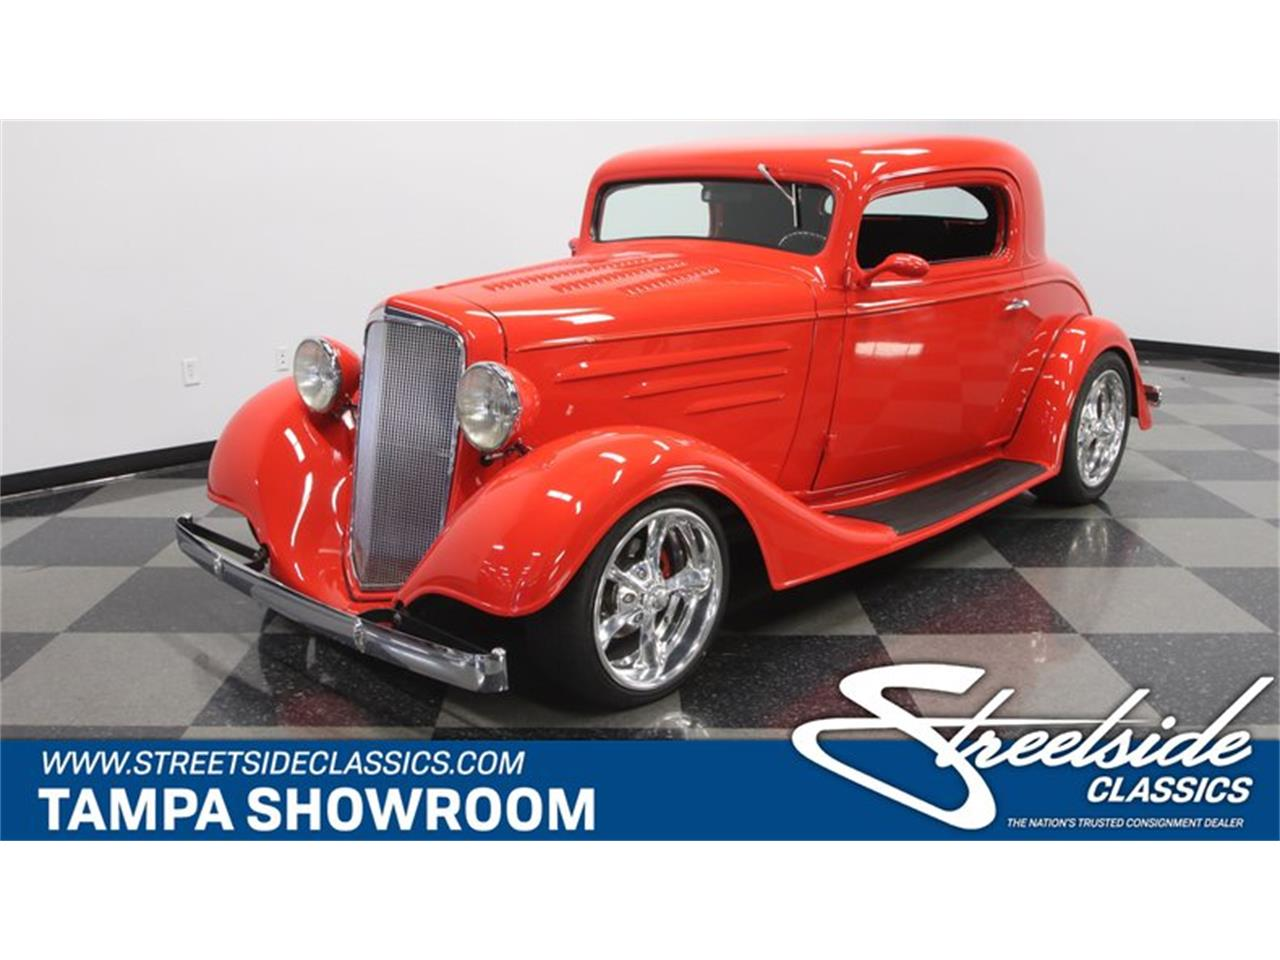 1934 Chevrolet 3-Window Coupe for sale in Lutz, FL